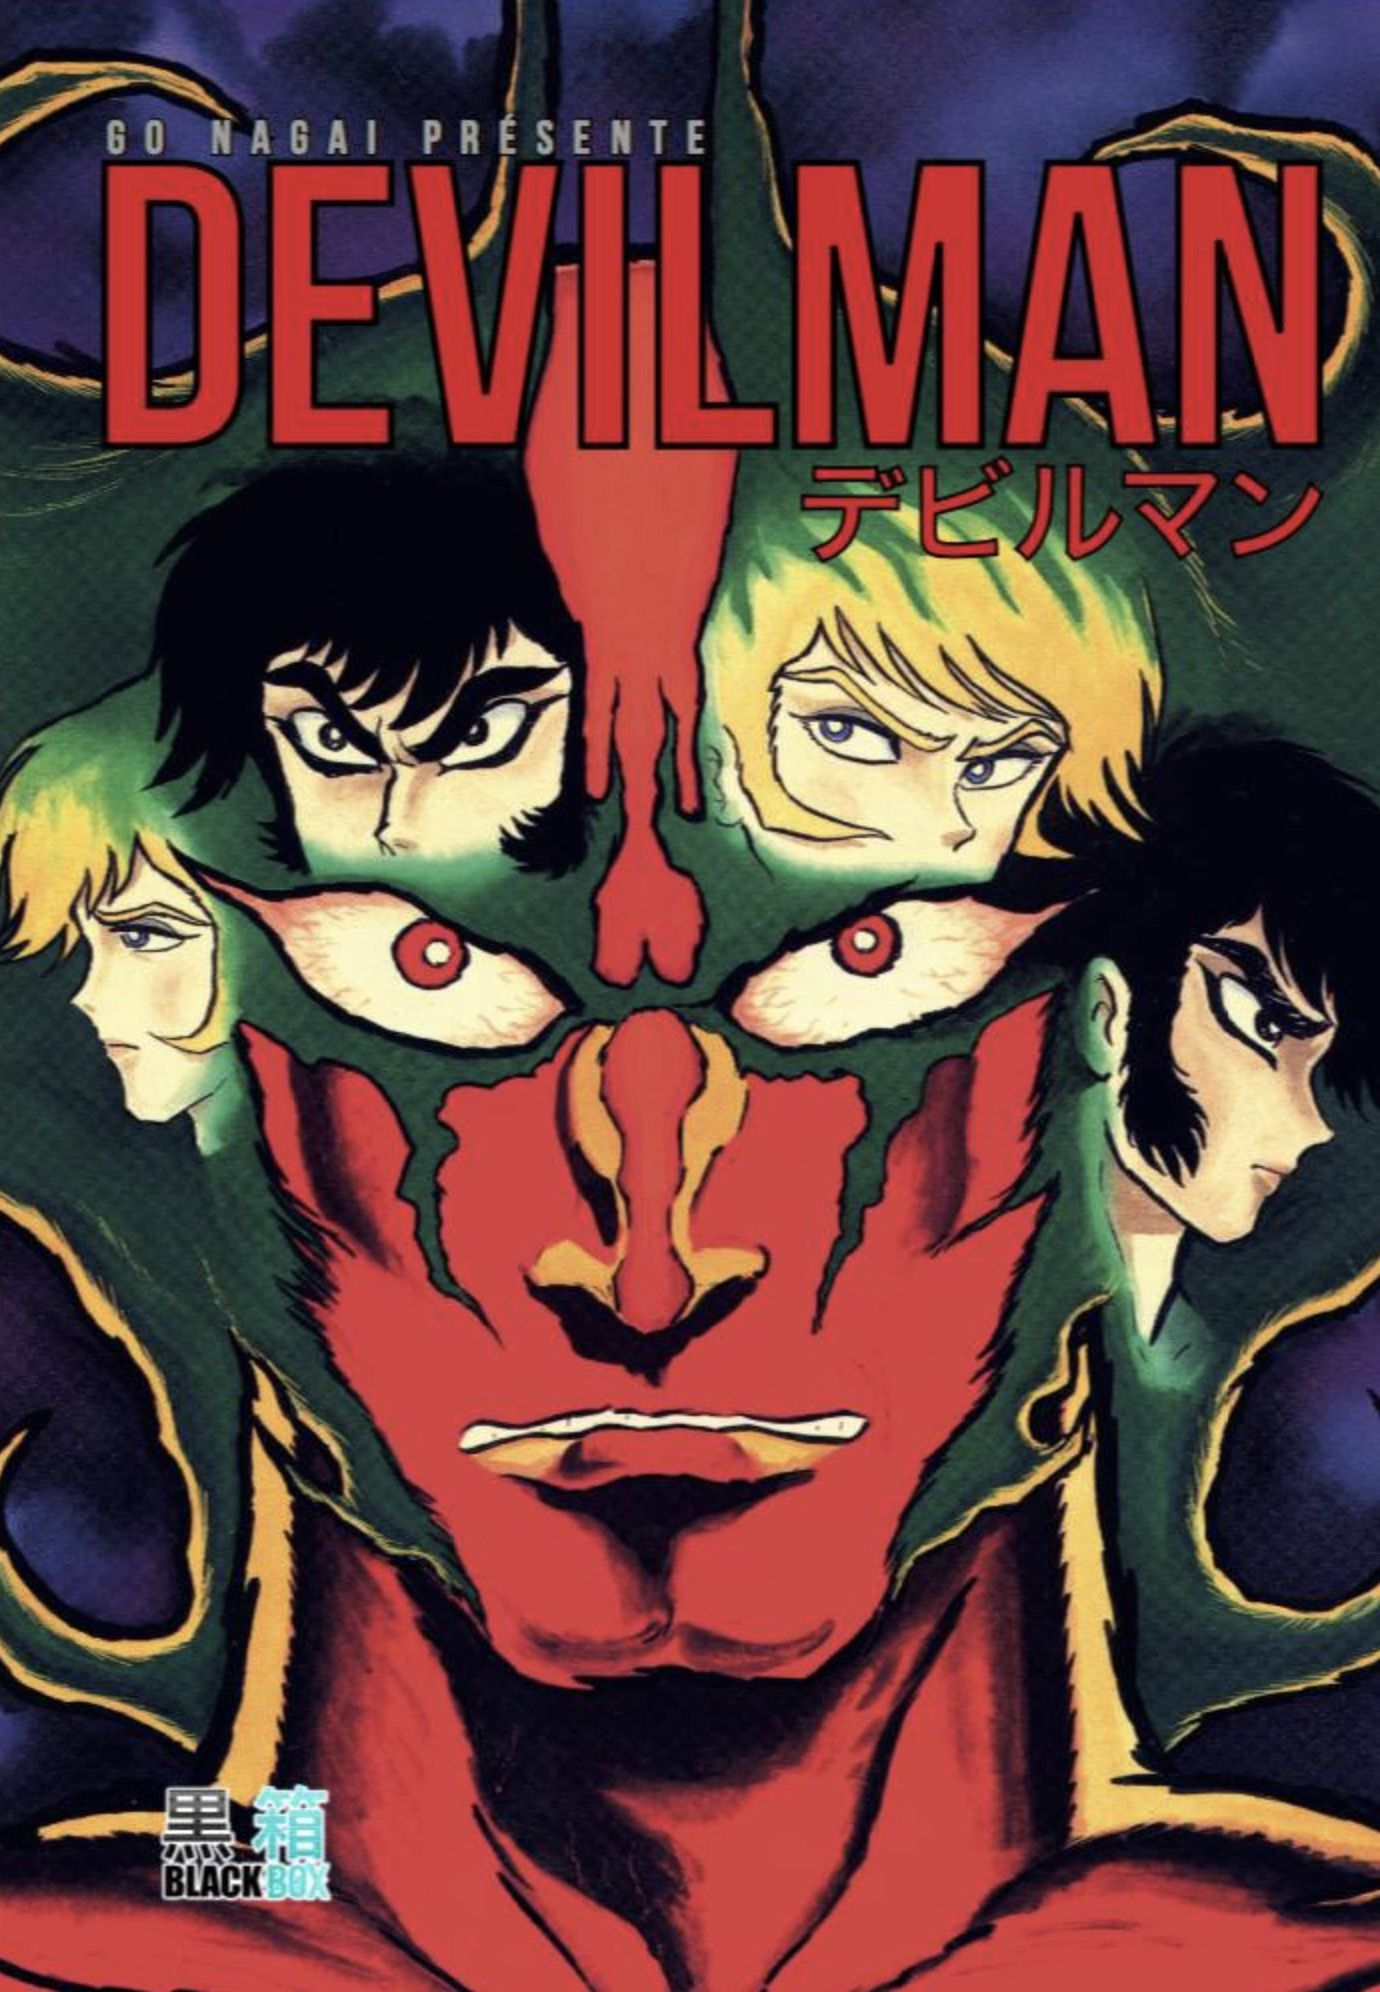 5 - Planning des sorties Manga 2018 - Page 2 Devilman-edition-50-ans-1-blackbox